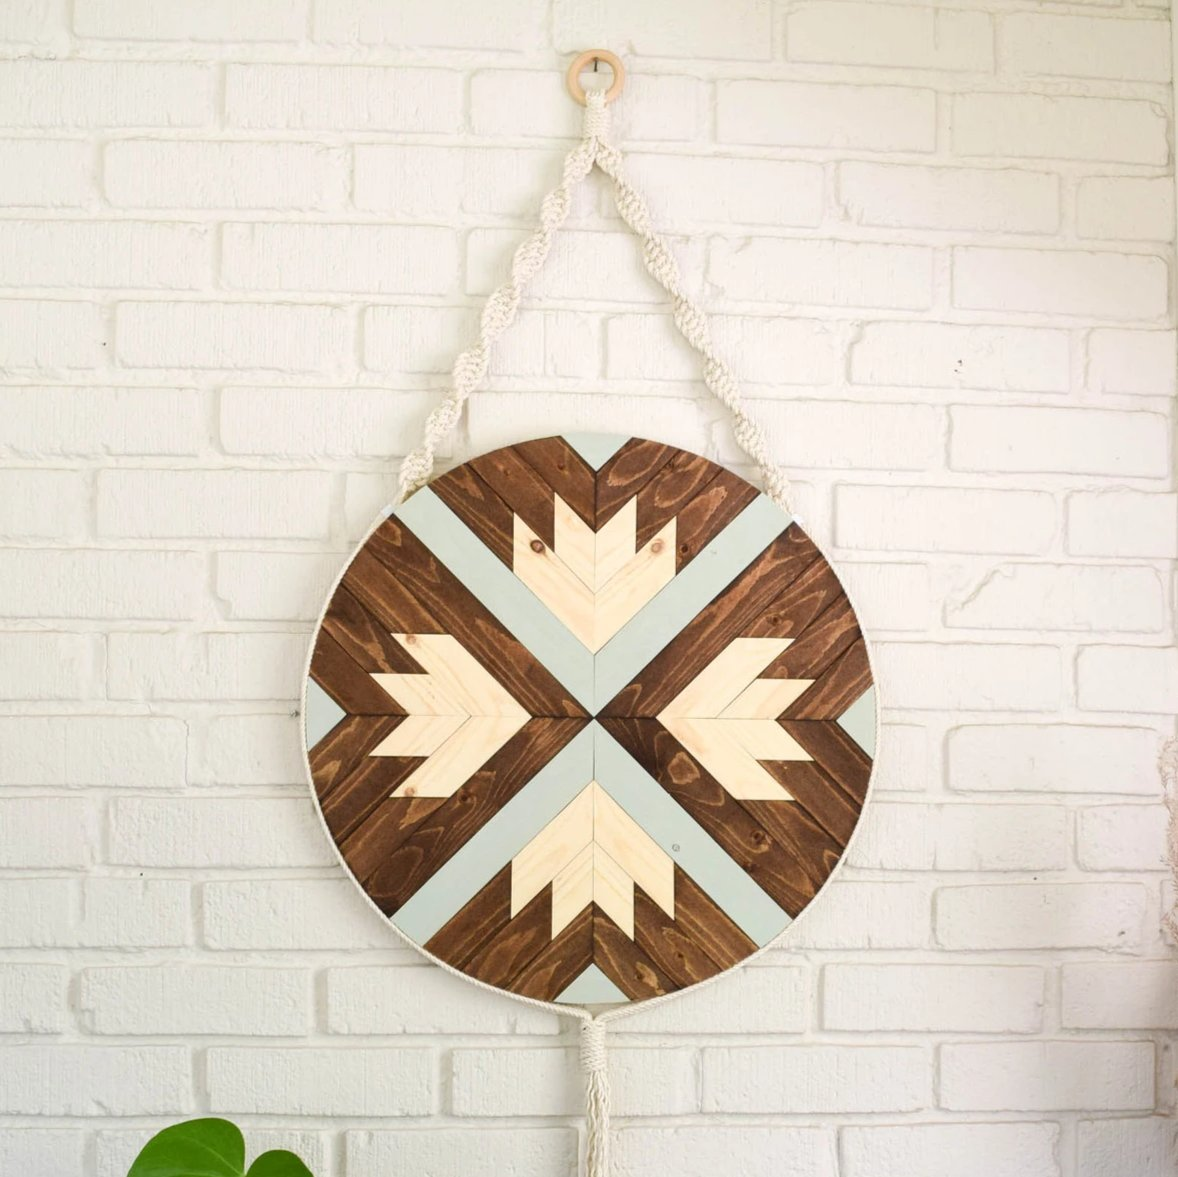 Finch - Round Macrame Wood Wall Art Hanging